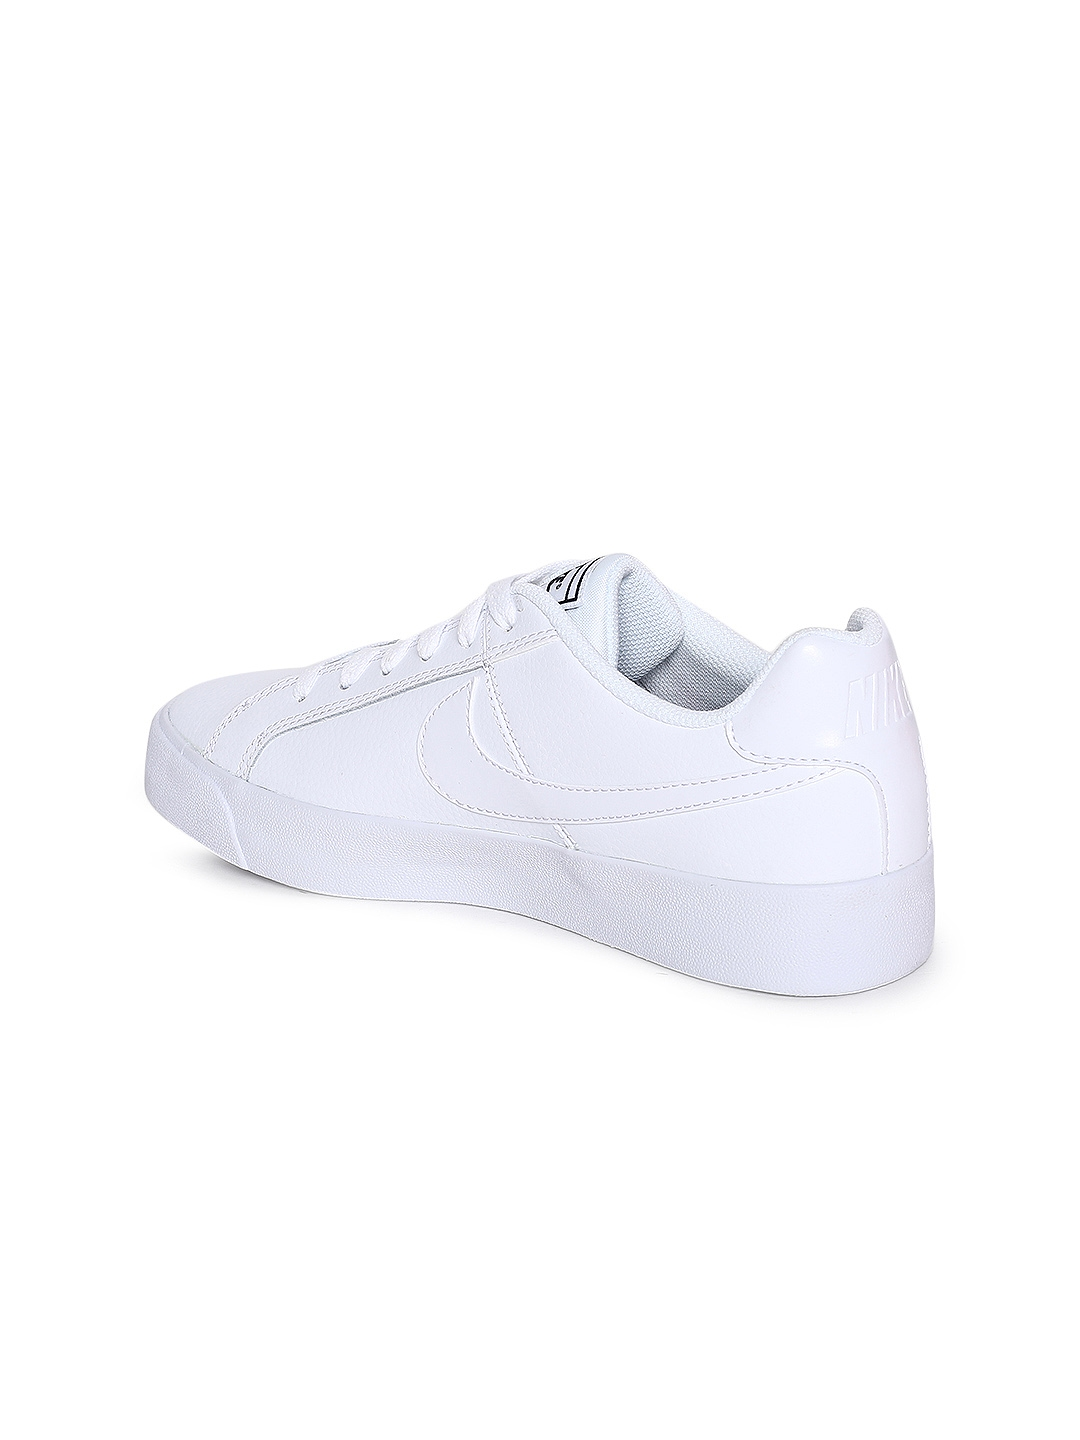 official photos 4cc94 d0b31 Nike Women White Court Royale AC Leather Sneakers